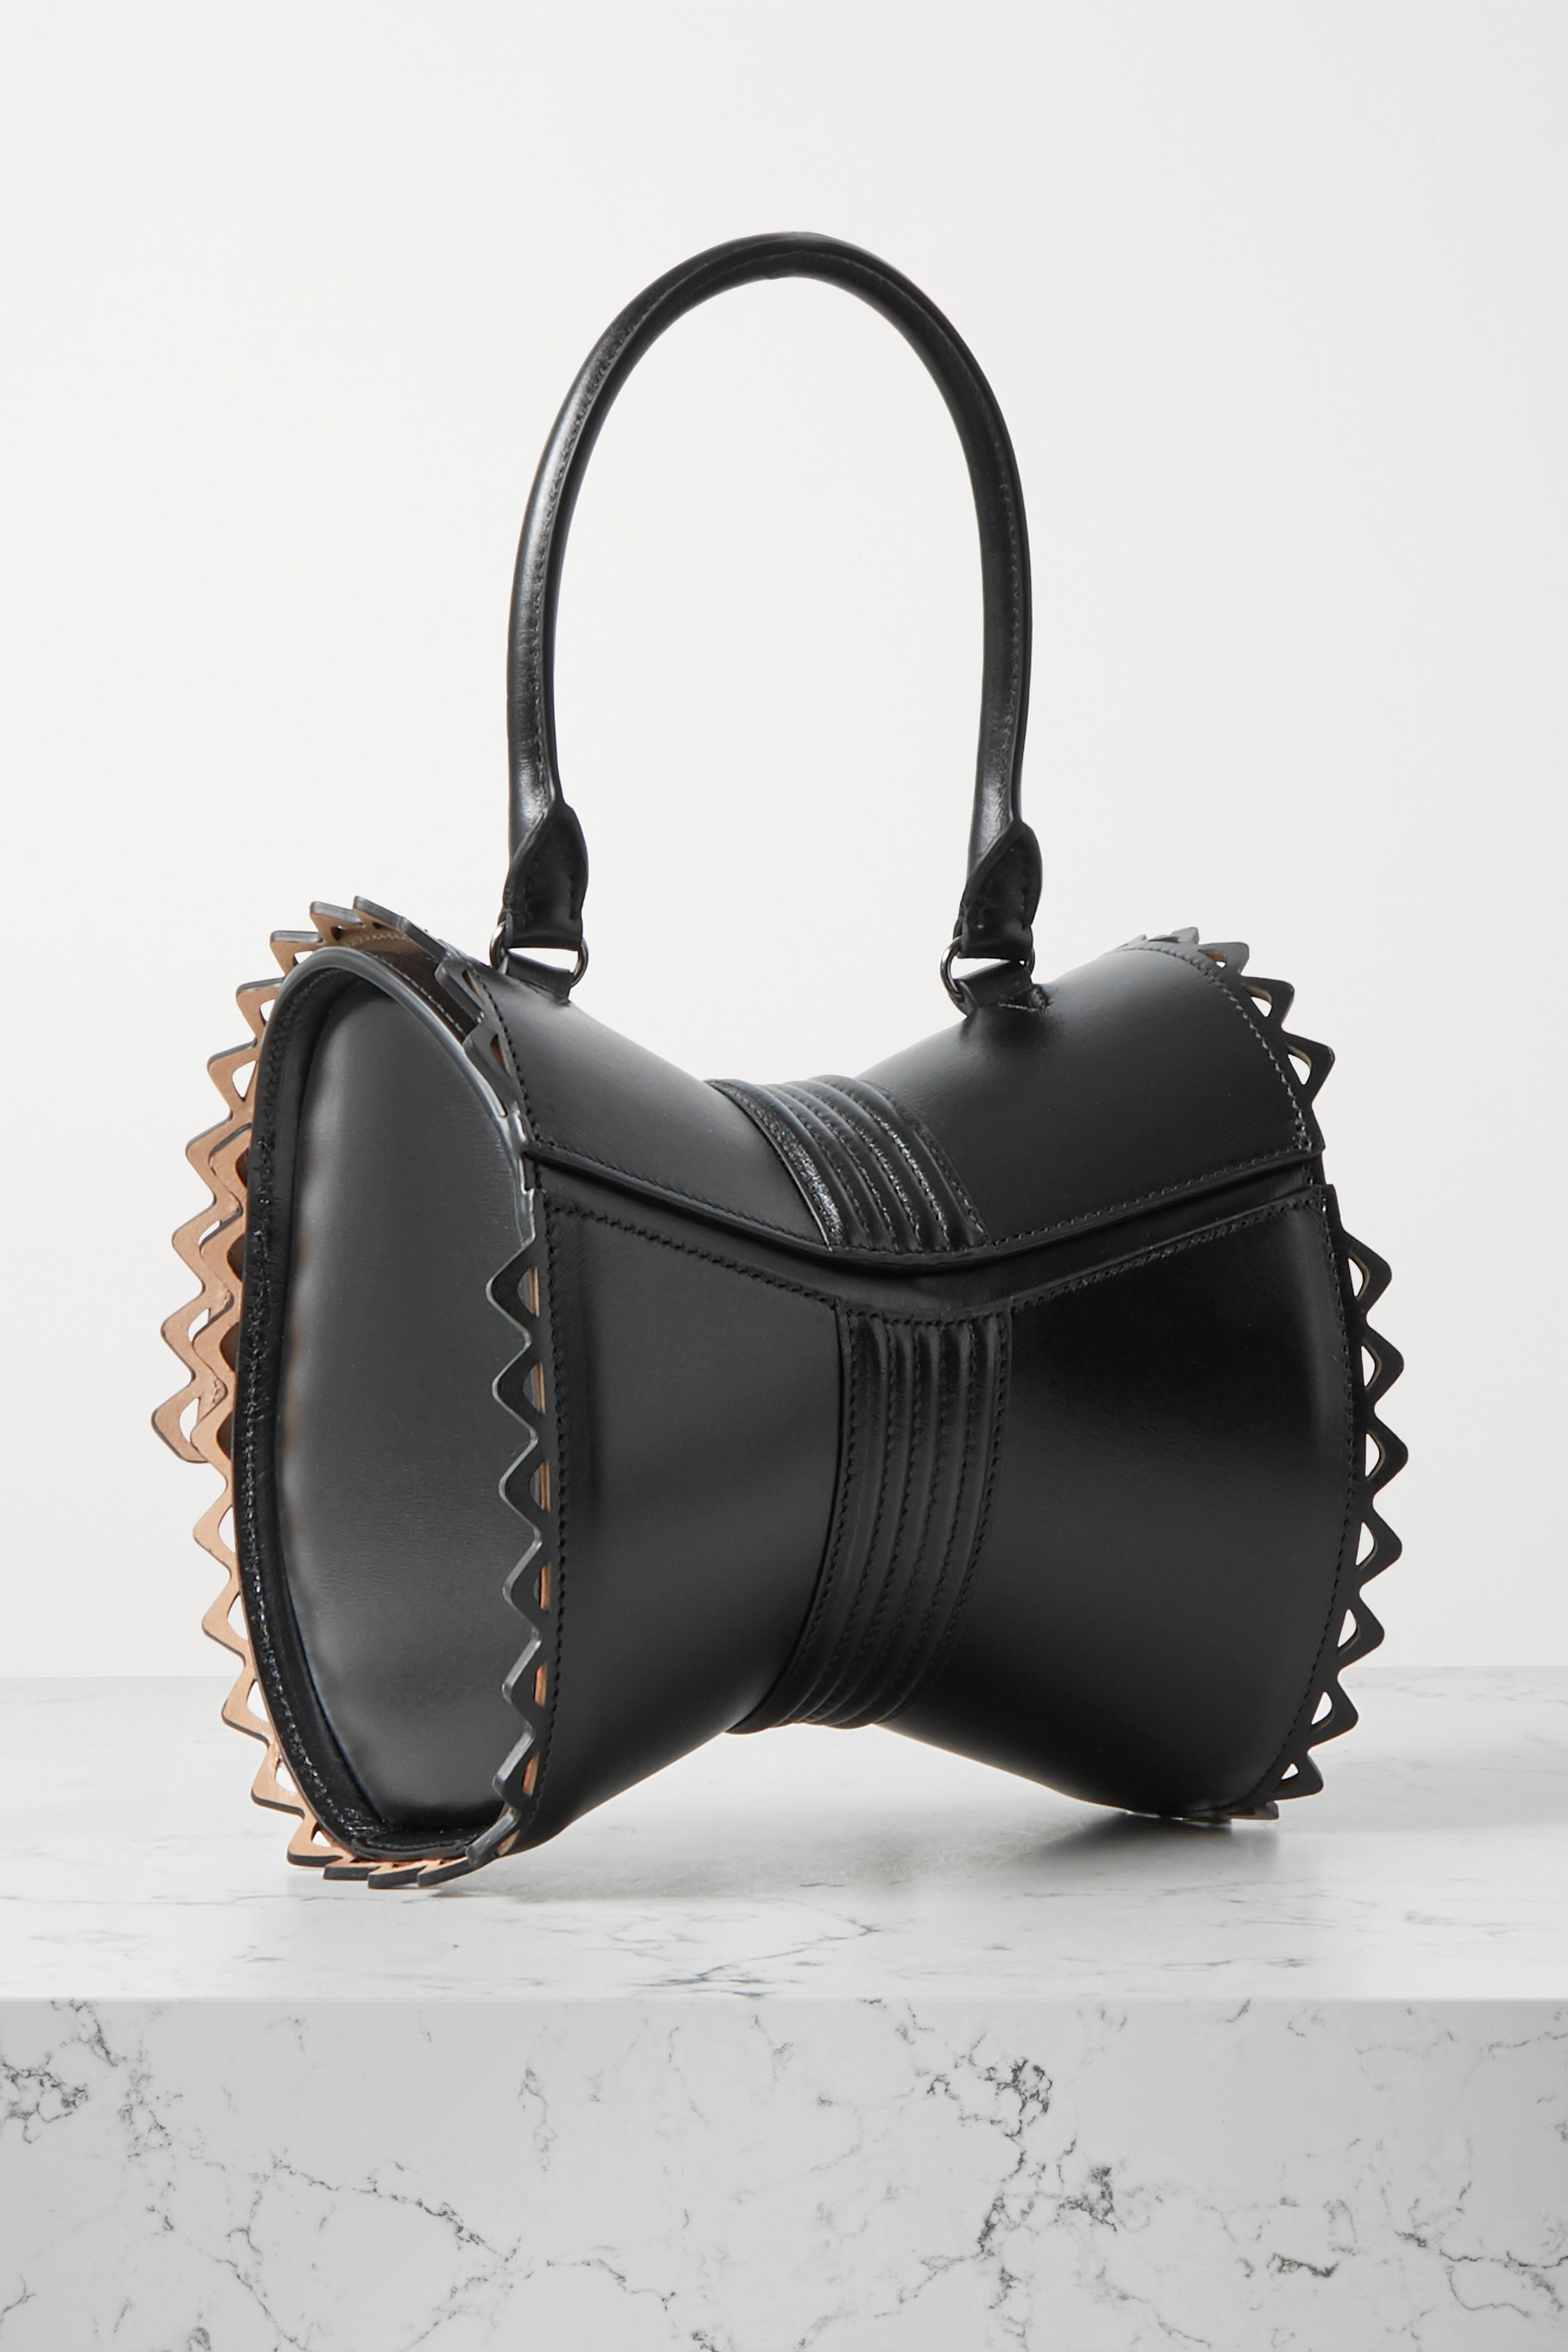 Alaïa Editions Corset 18 buckled laser-cut leather tote